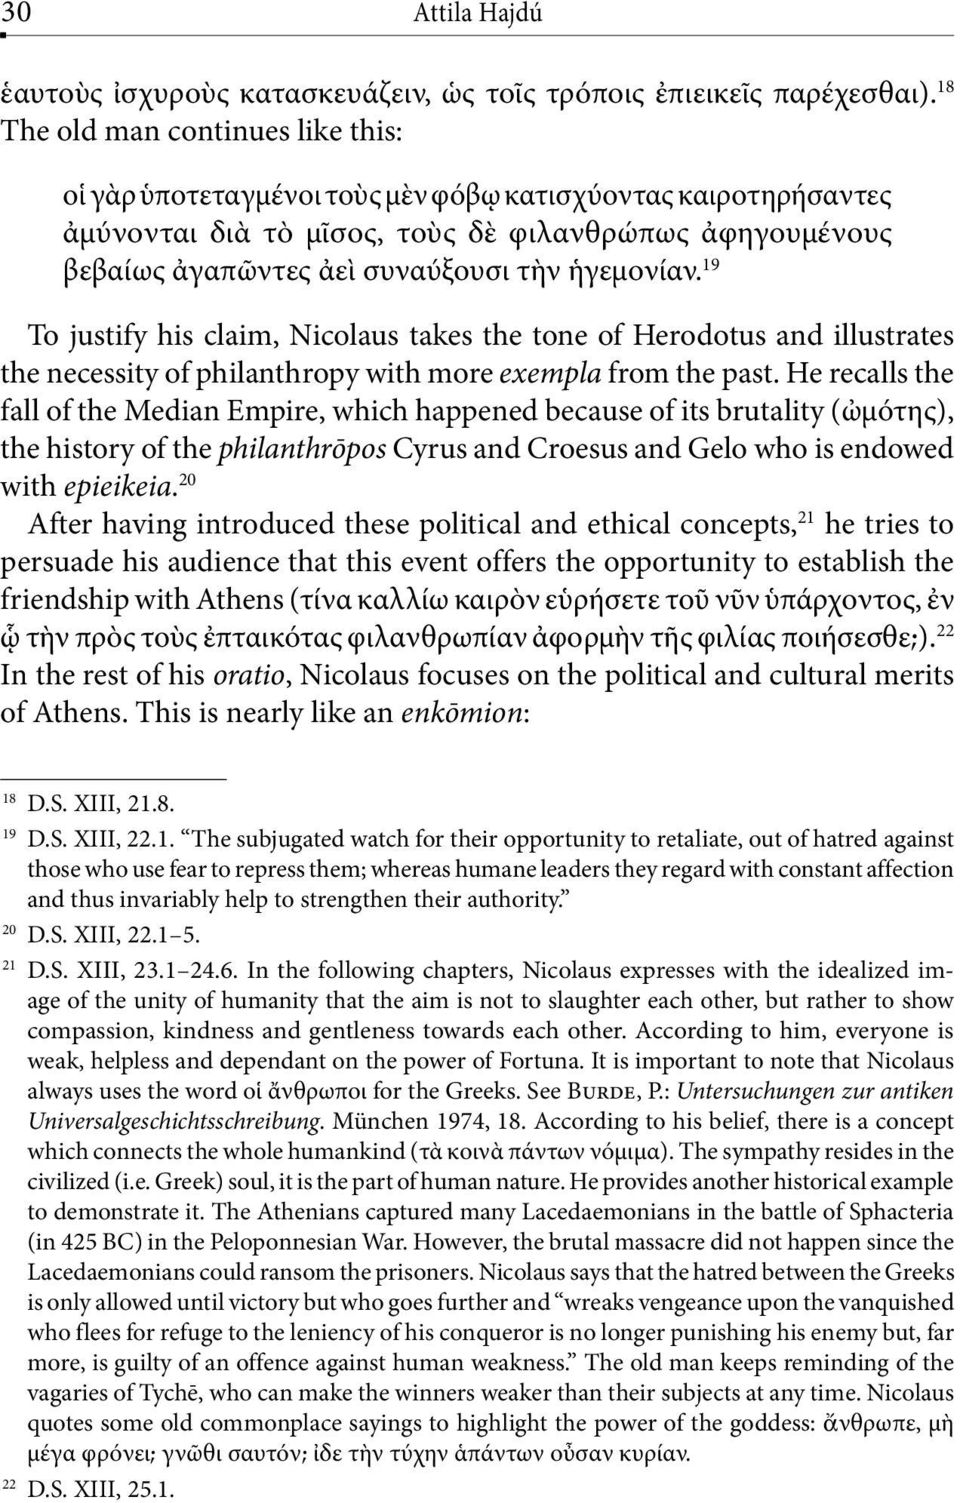 ἡγεμονίαν. 19 To justify his claim, Nicolaus takes the tone of Herodotus and illustrates the necessity of philanthropy with more exempla from the past.